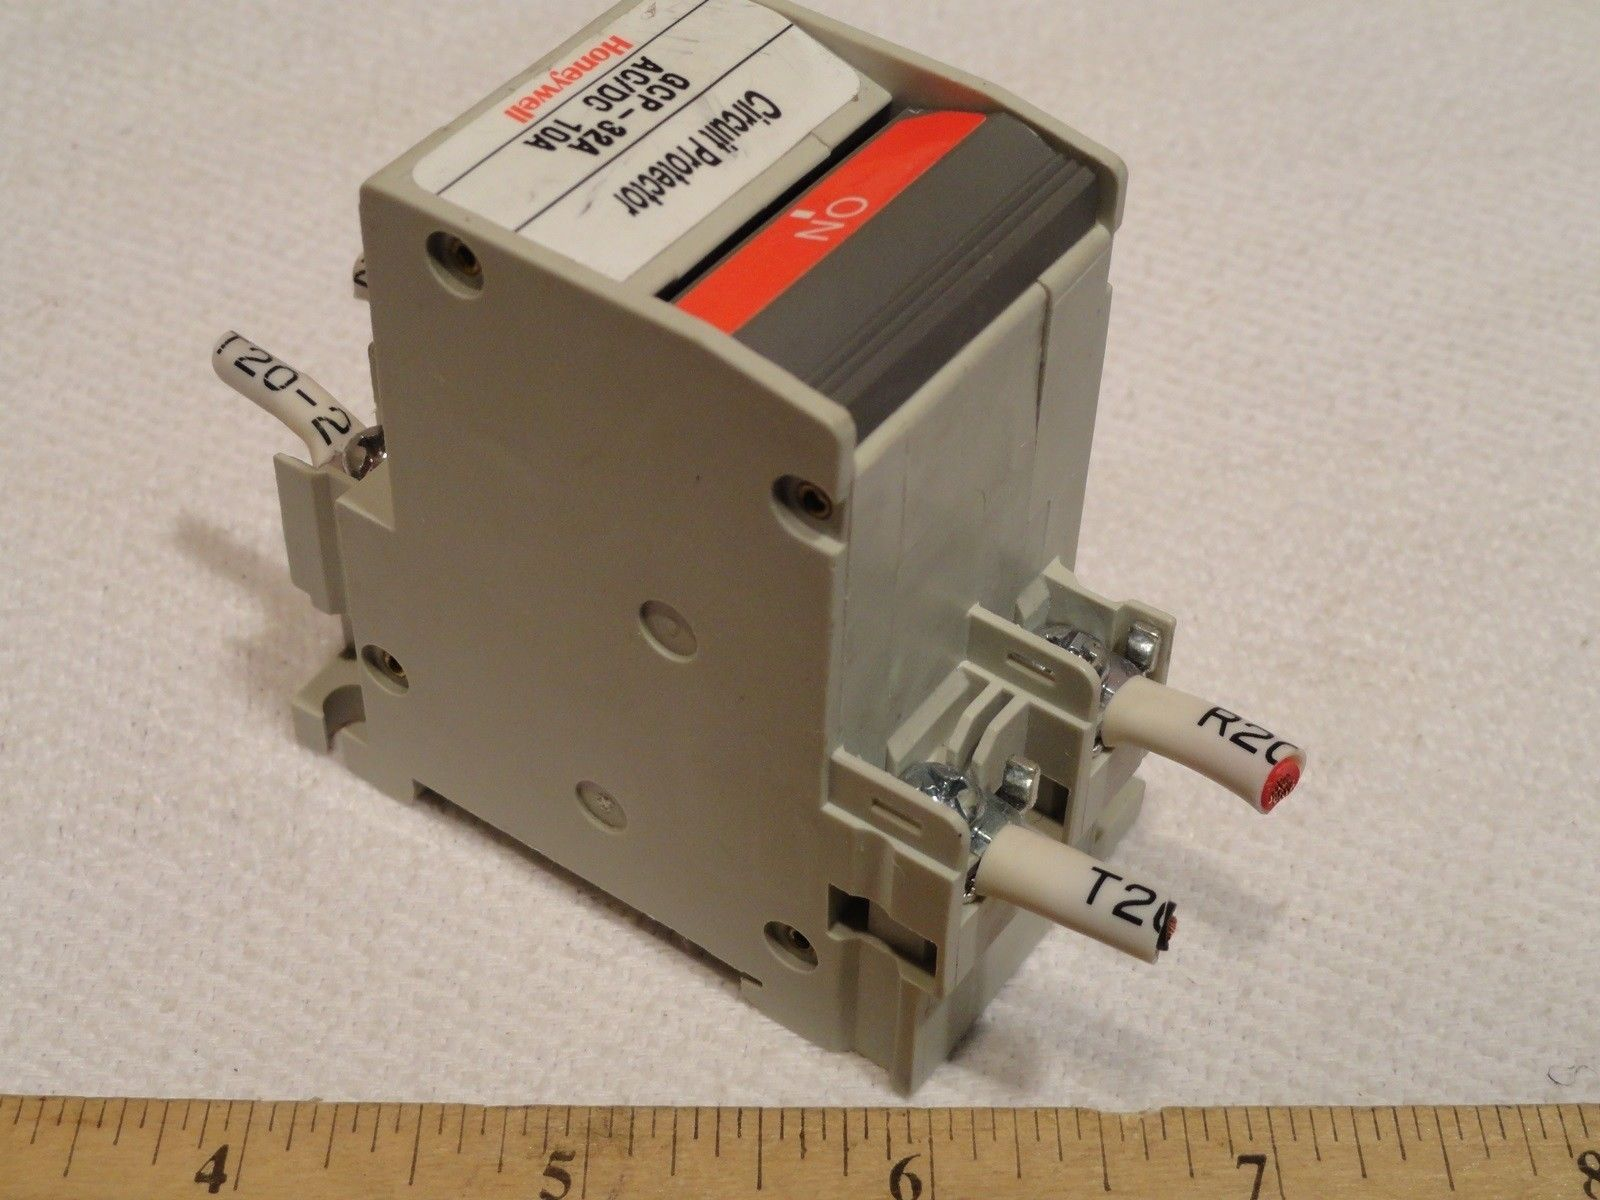 Honeywell 10a Gcp 32a Circuit Protector Fuse And 50 Similar Items Details About Siemens 5sx21 C5 230 400v 5 Amp Breaker 2 Pole Jk02001 7003 220vac